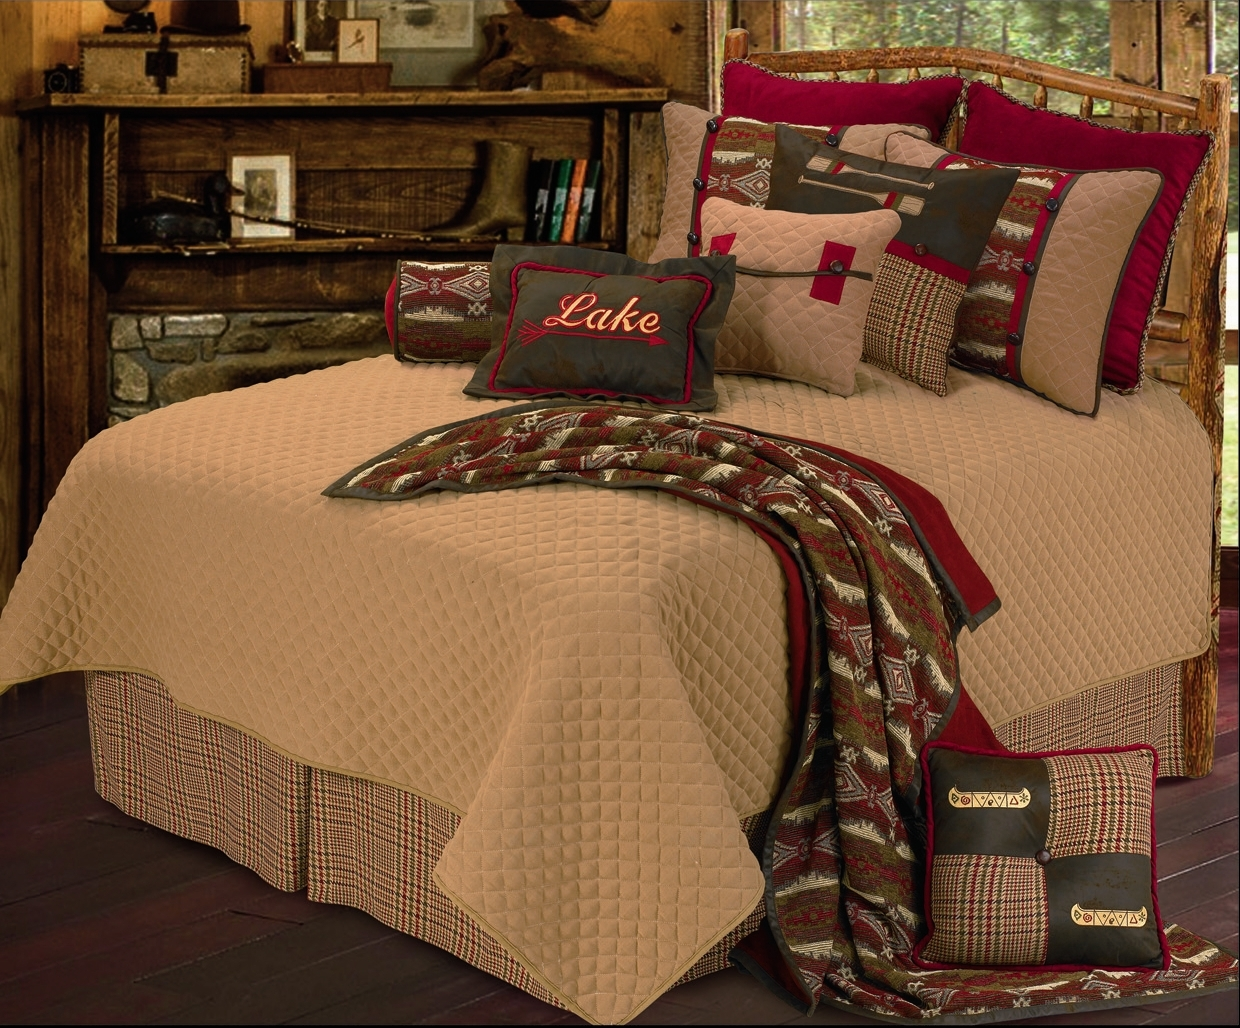 Bradley S Furniture Etc Utah Rustic Comforters And Bedding